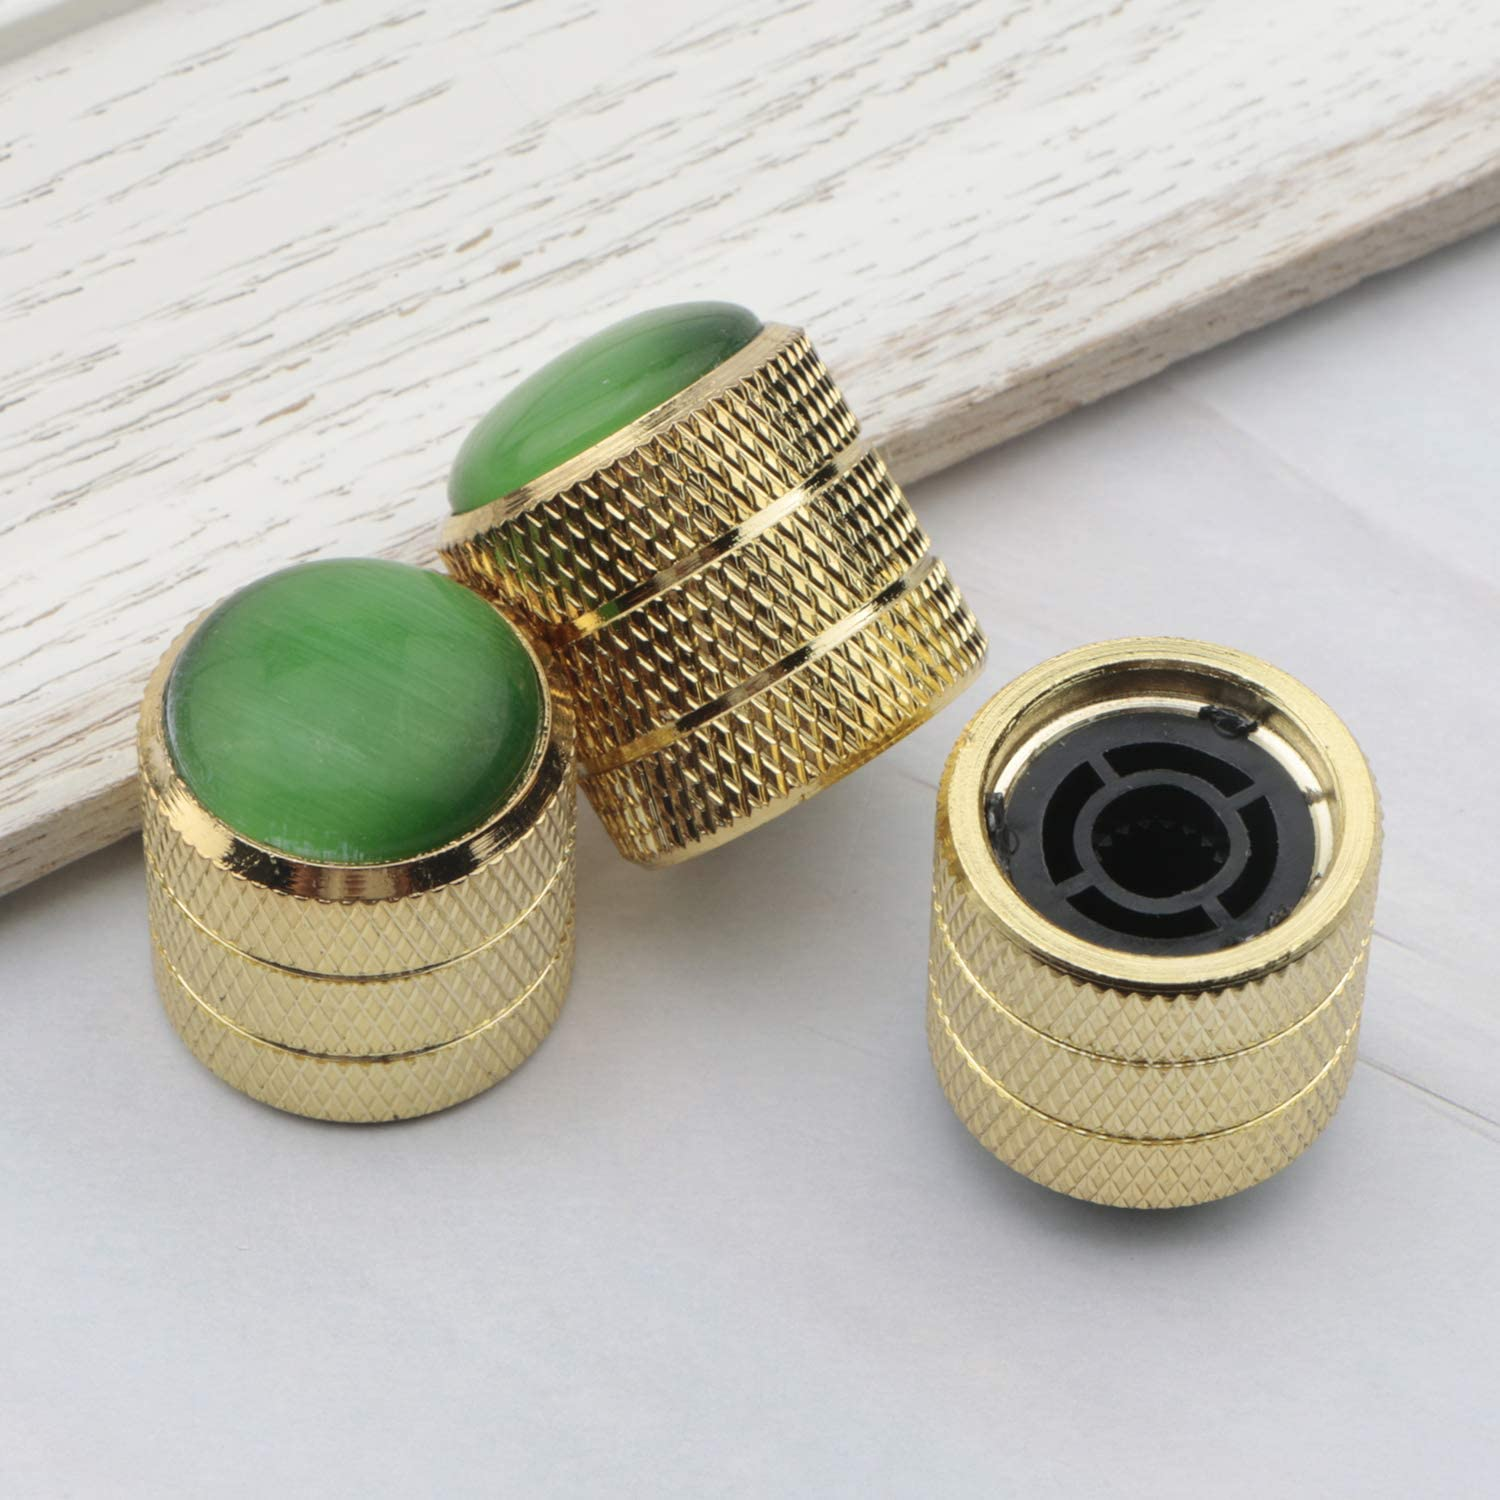 Swhmc 3x Gold Green Gemstone Top Volume Tone Control Knobs Dome Pots Cap for Electric Guitar Parts